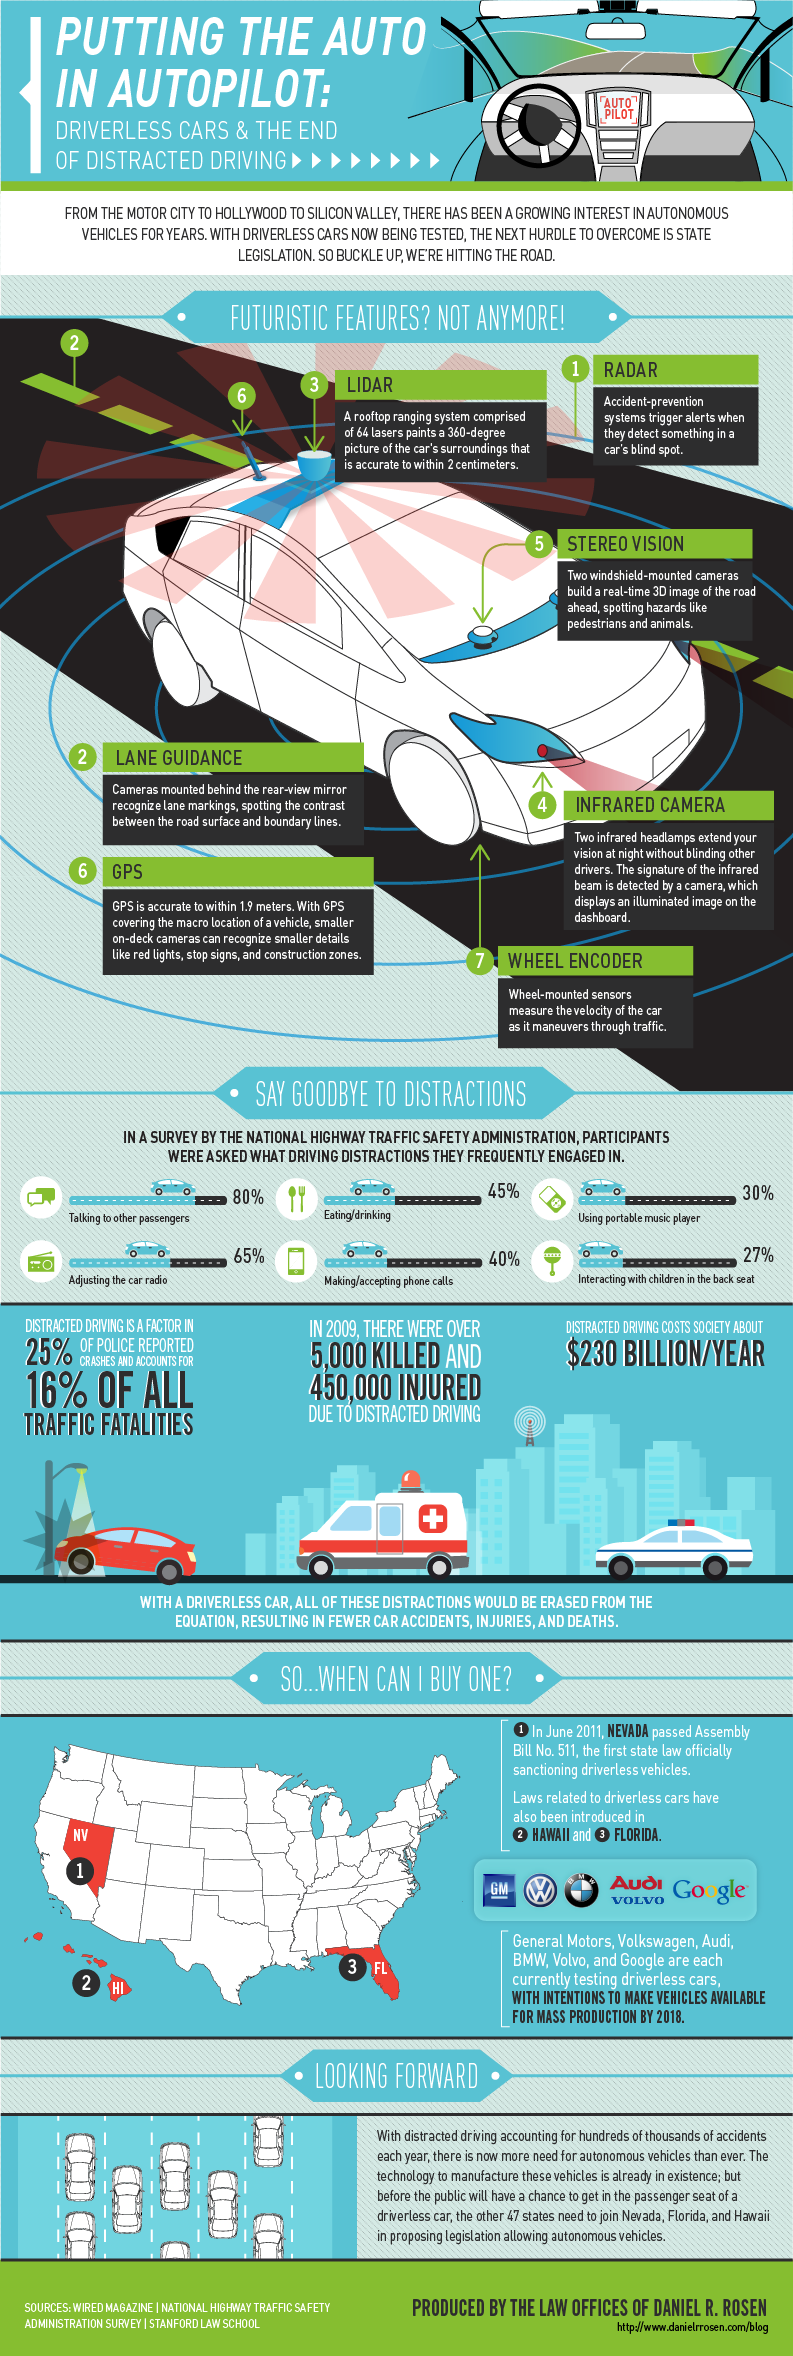 Driverless Cars and Distracted Driving